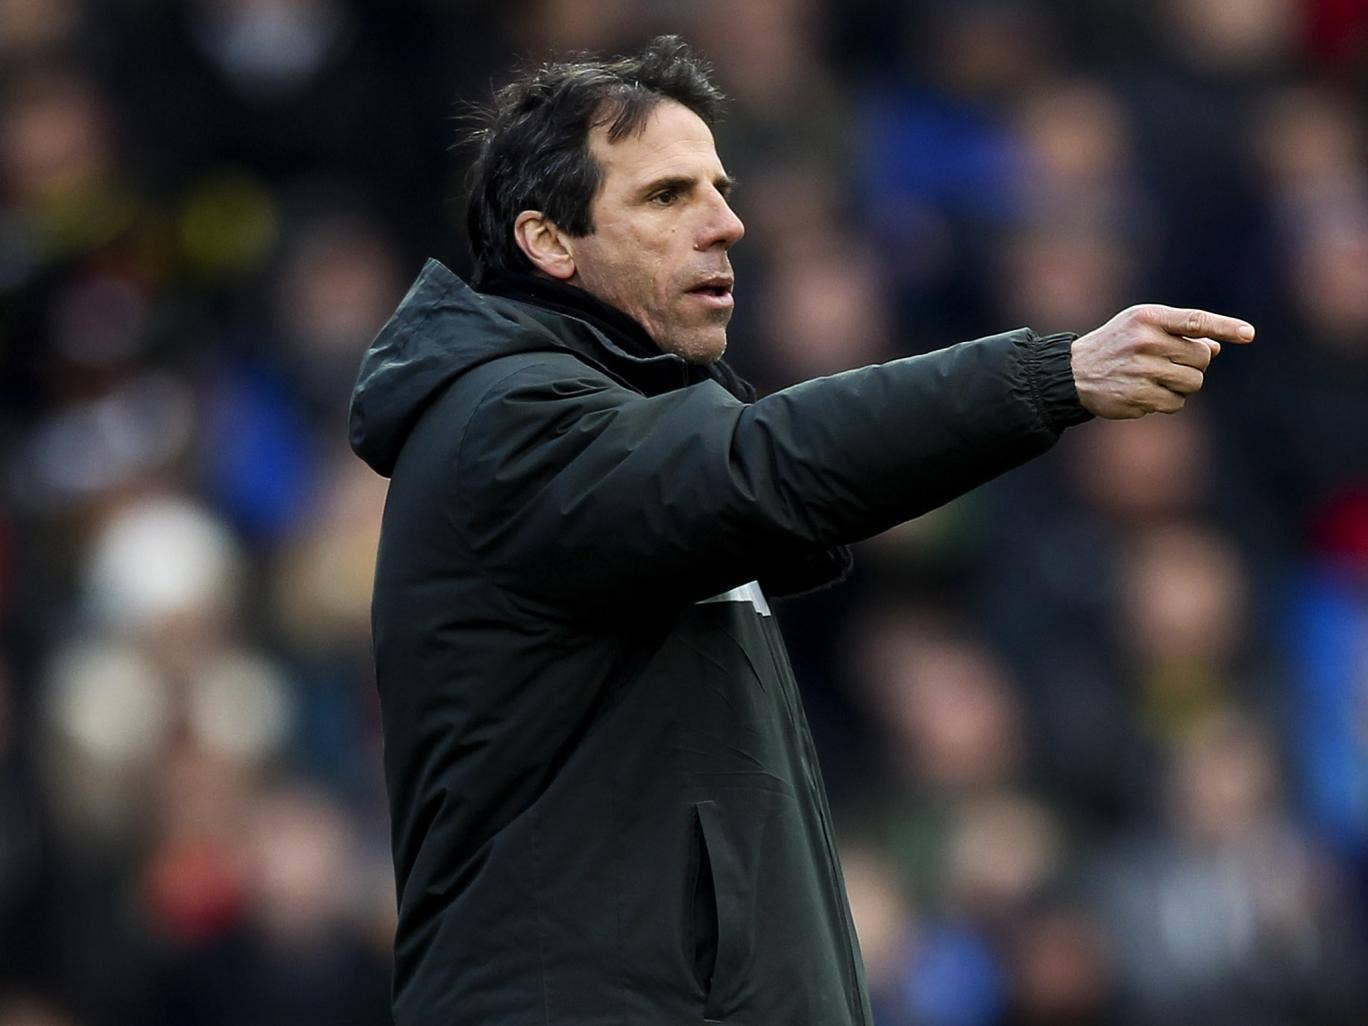 'I didn't see it coming,' admitted Gianfranco Zola of the equaliser